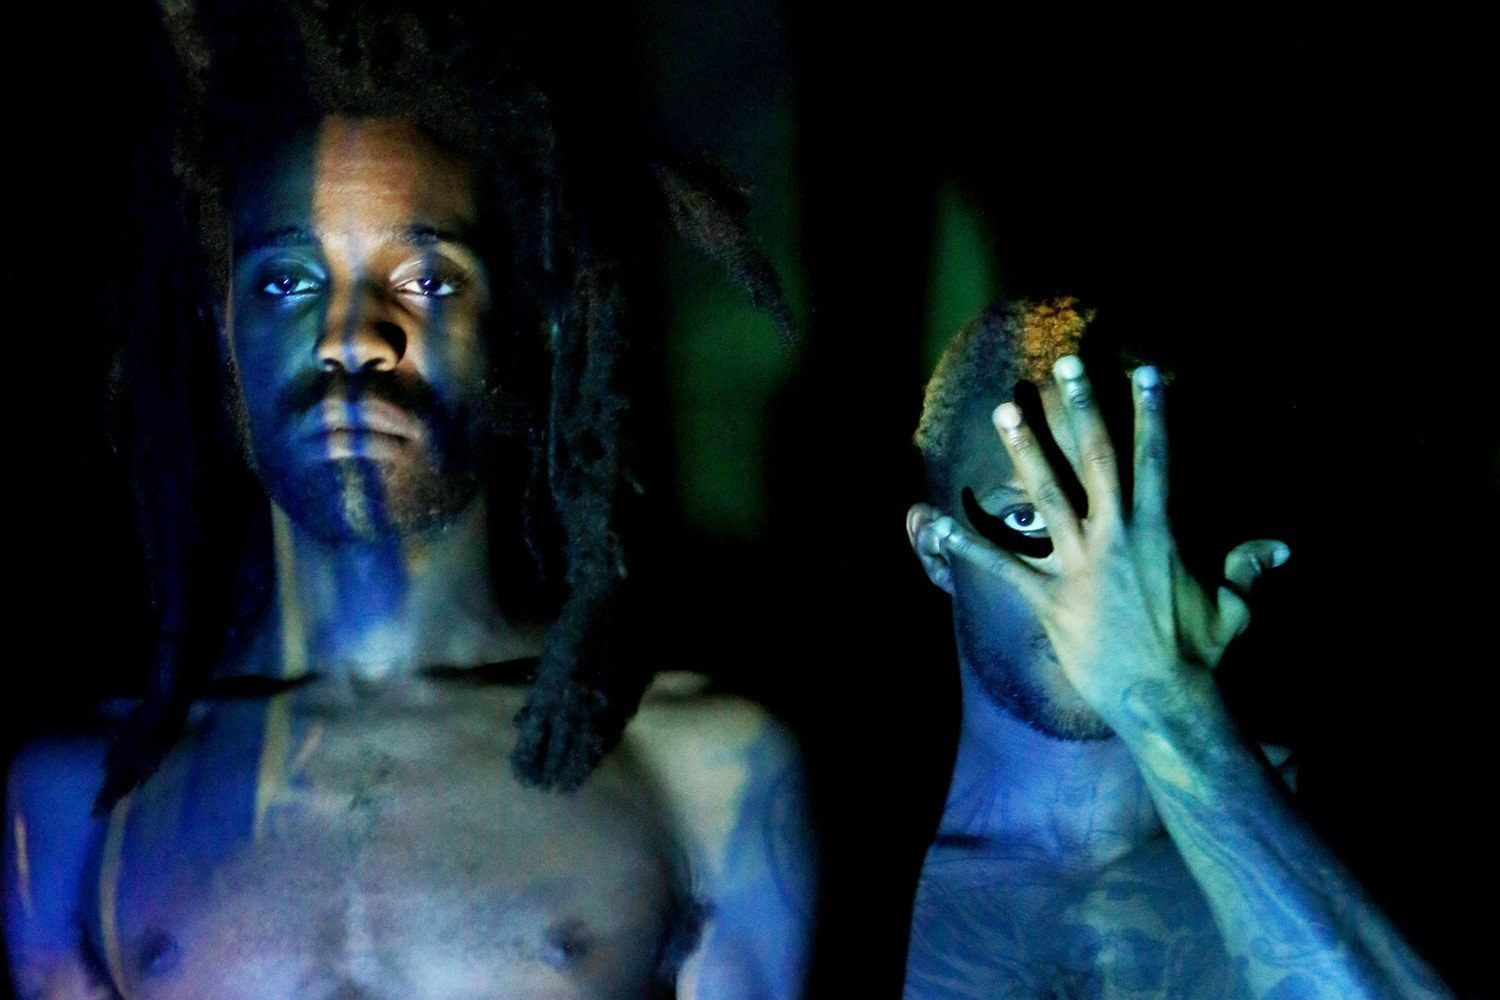 Ho99o9 are touring Europe this spring, with one show in the UK